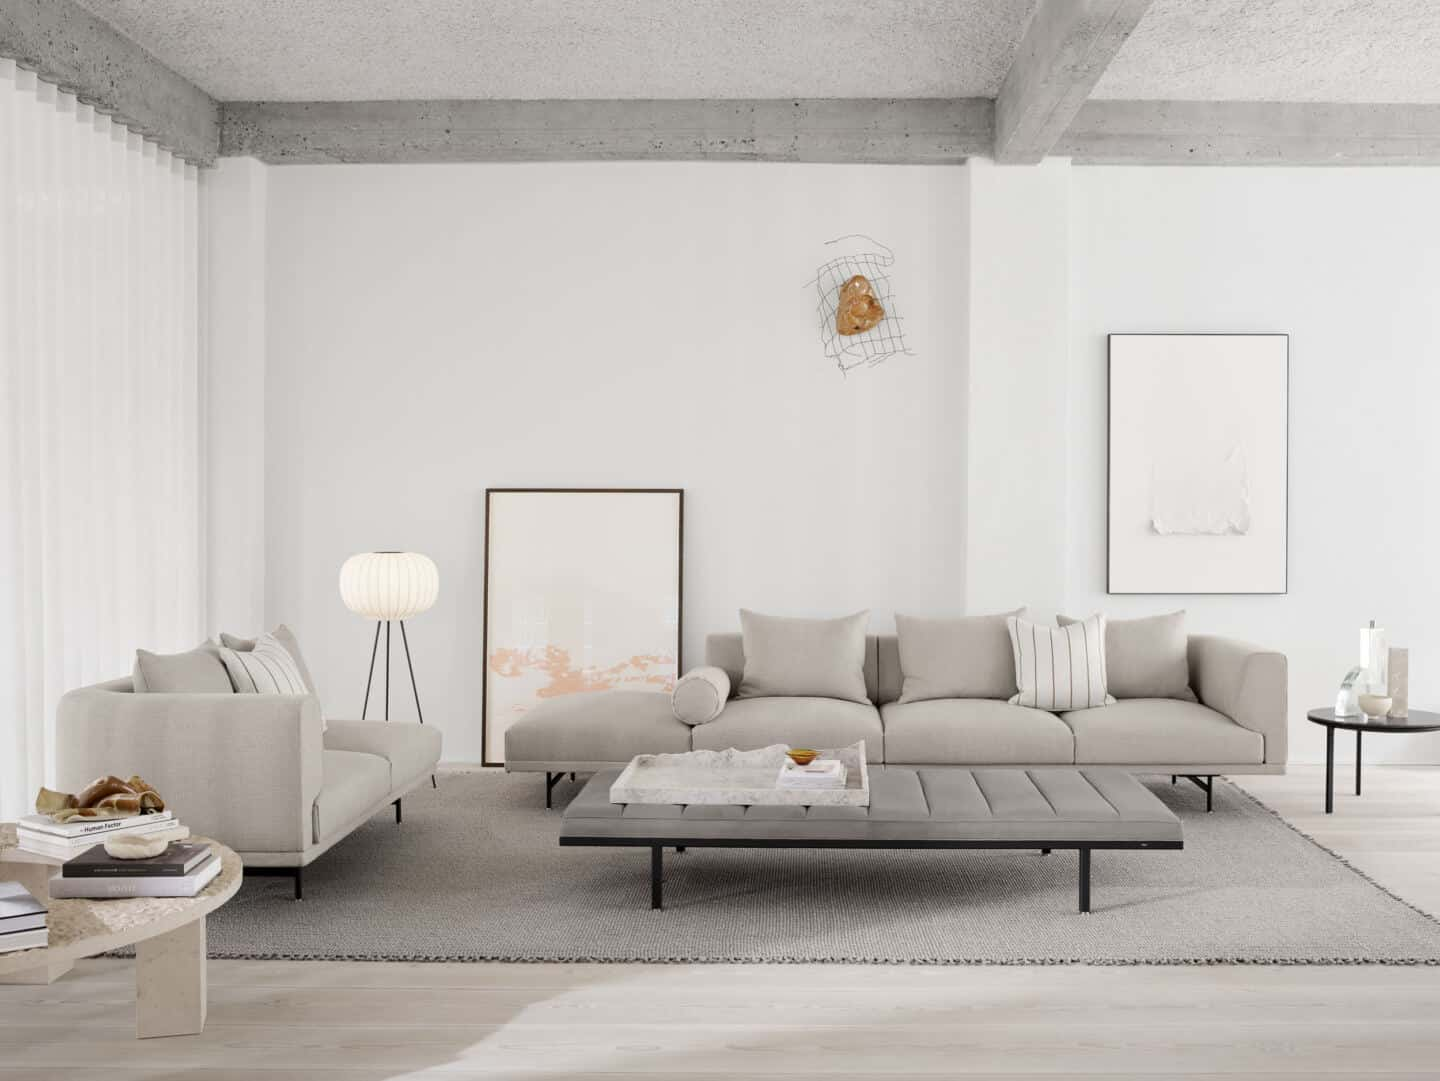 Japandi living room featuring low grey sofas and a low grey coffee table with a floor-standing paper light from Vipp